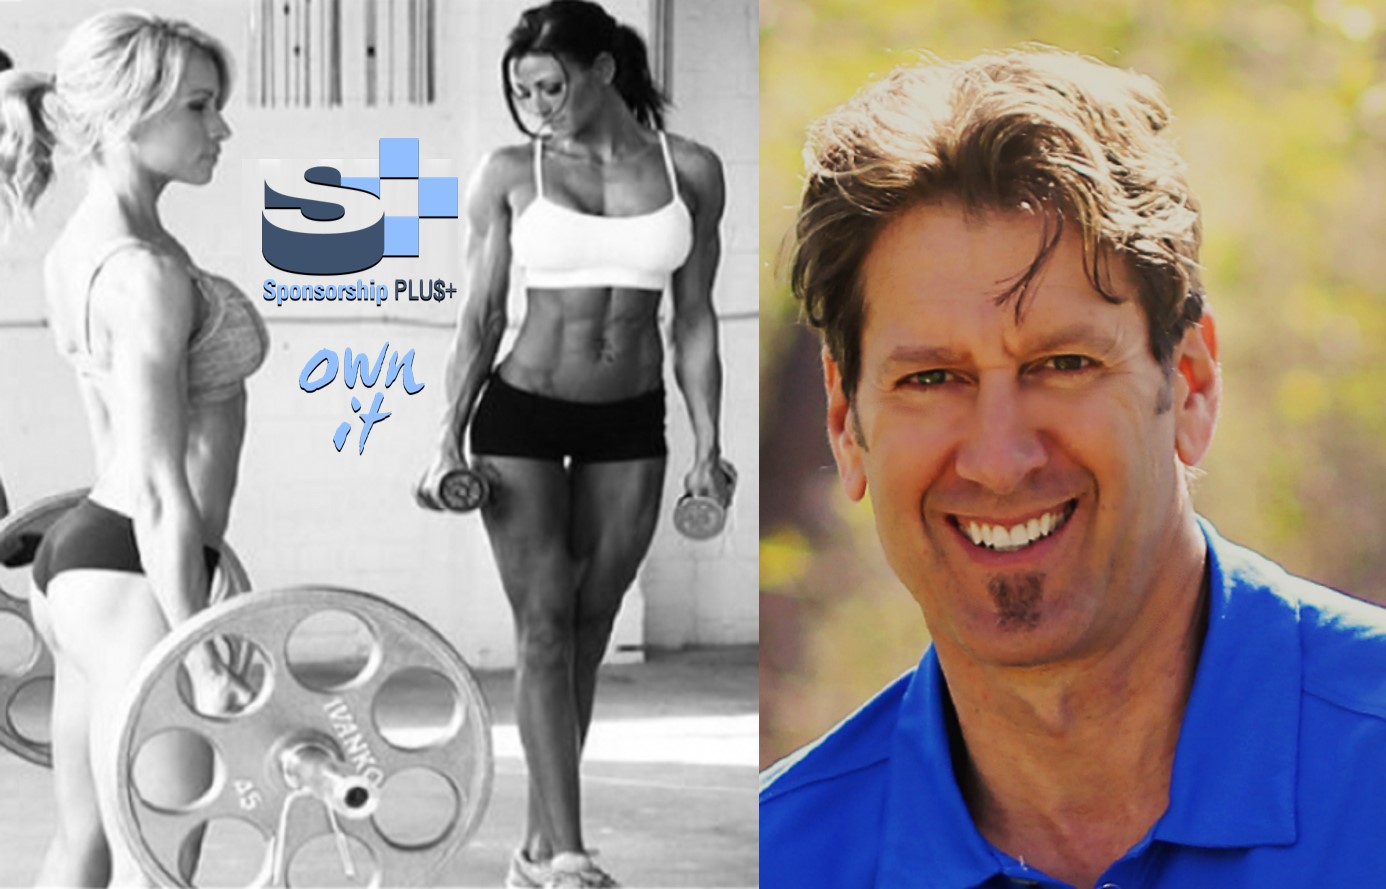 Jeff Taylor wants athletes to own their economic upside. (interview below).